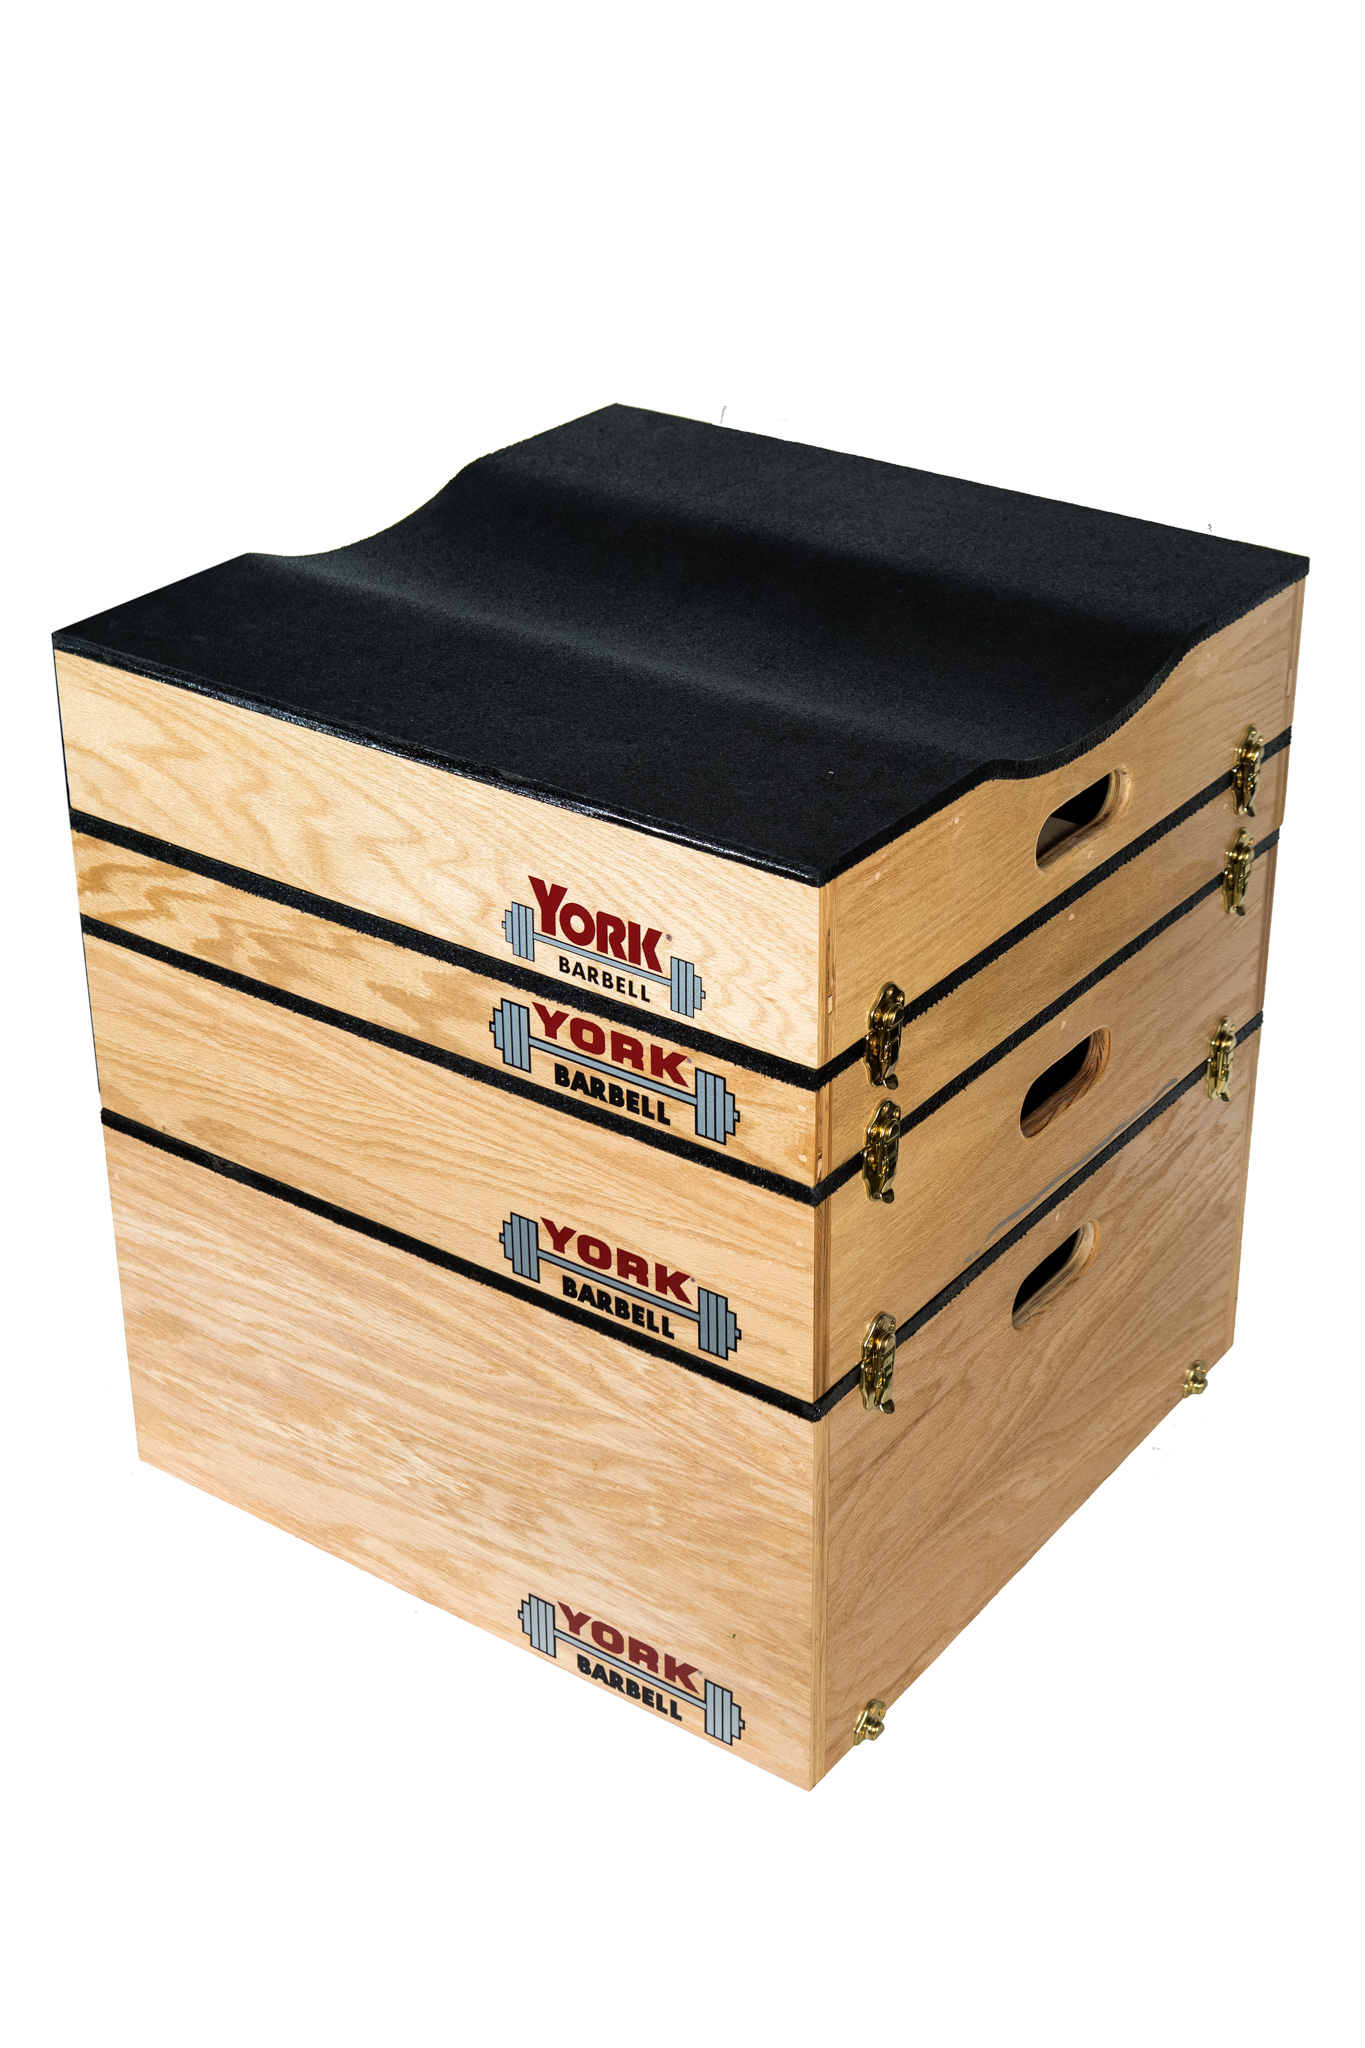 Stackable Plyo Step Up Box Gym Equipment York Barbell